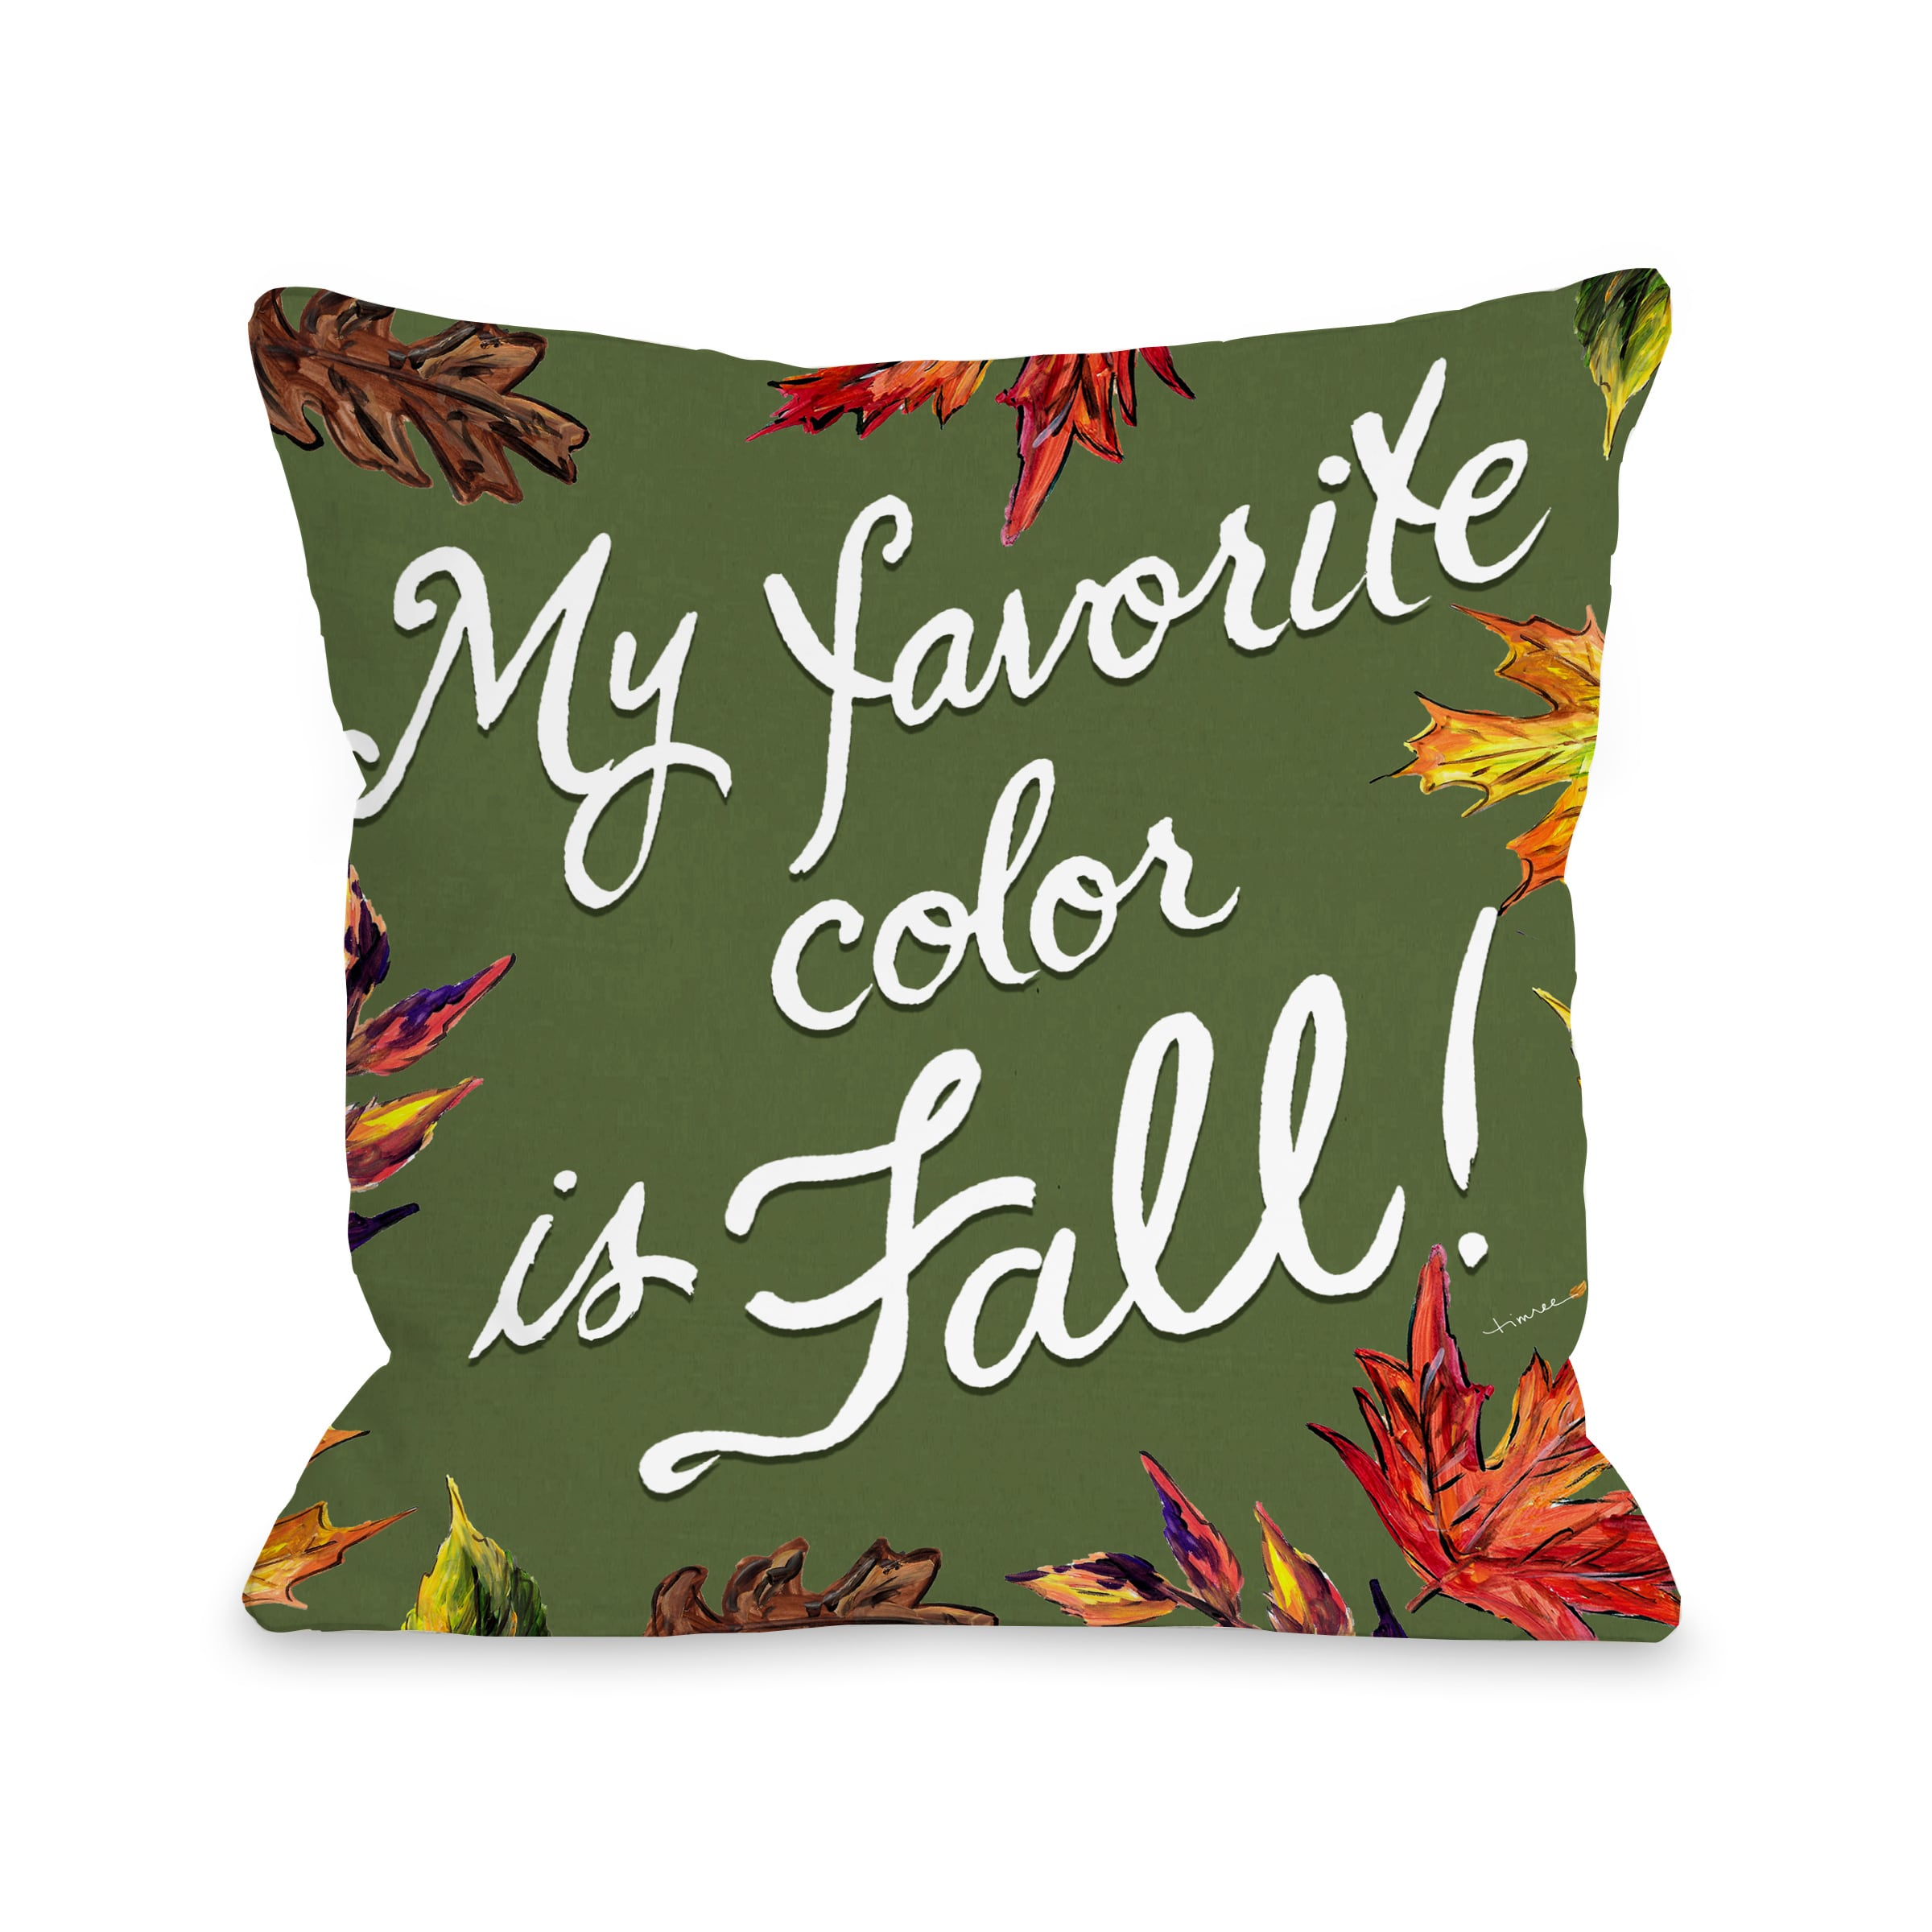 Fall Leaves Favorite Color - Green 18x18 Pillow by Timree